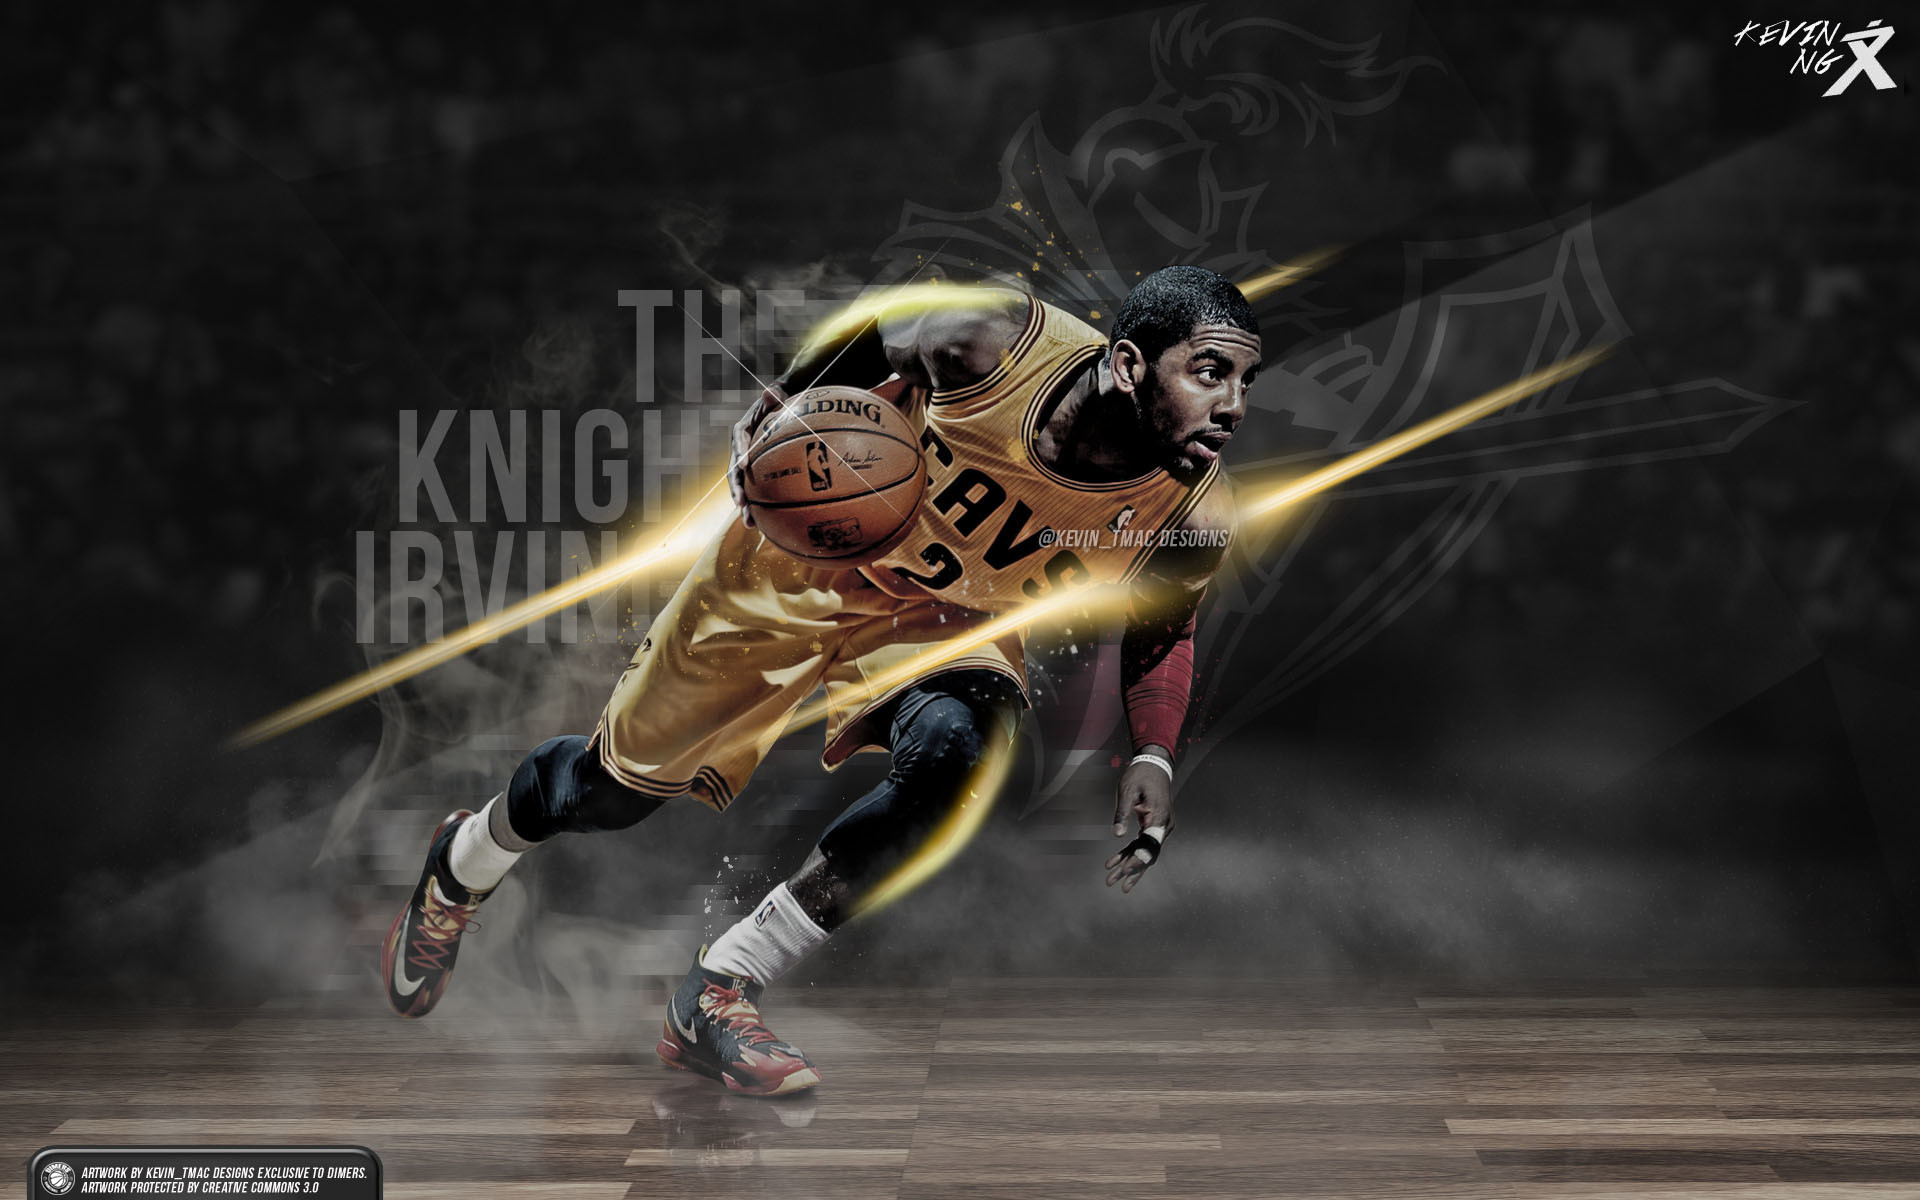 Basketball wallpapers hd 64 images - Cool basketball wallpapers hd ...